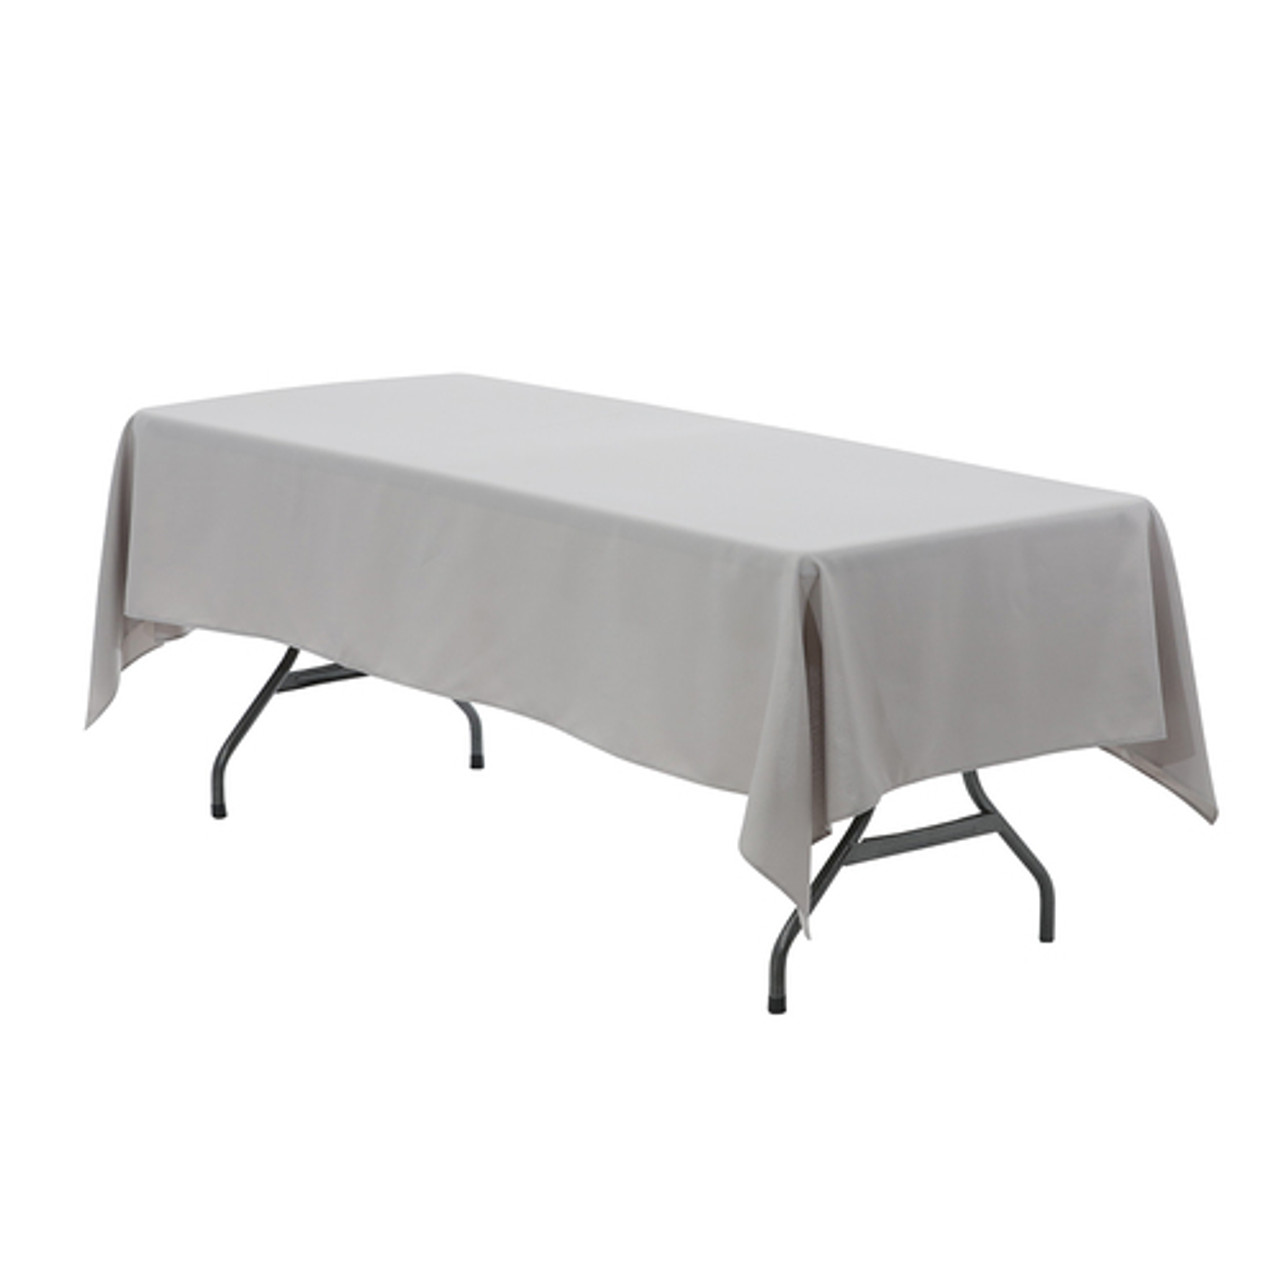 60 inch by 126 inch WHITE FABRIC TABLECLOTH FOR YOUR HOLIDAY TABLE